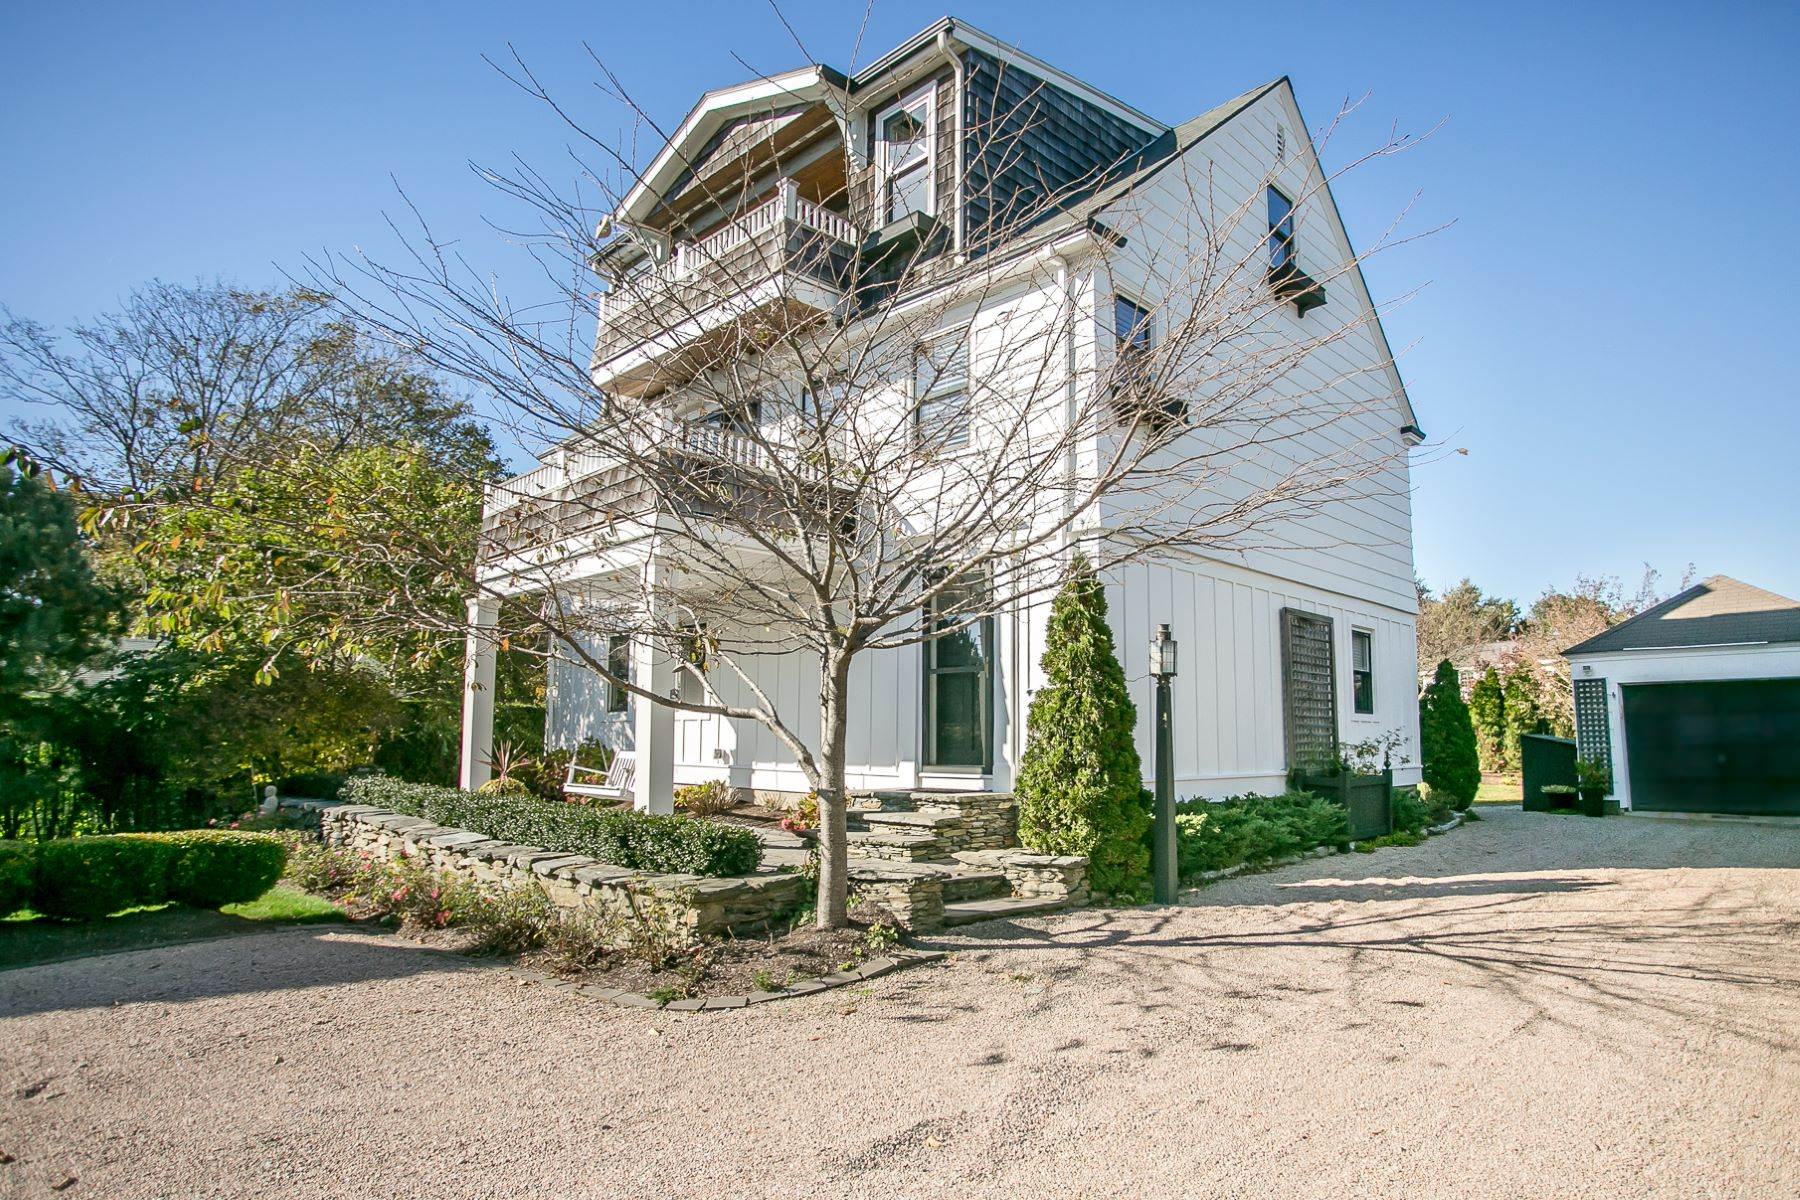 Single Family Homes for Sale at Renovated Cape with Water Views 58 Ruggles Avenue Newport, Rhode Island 02840 United States